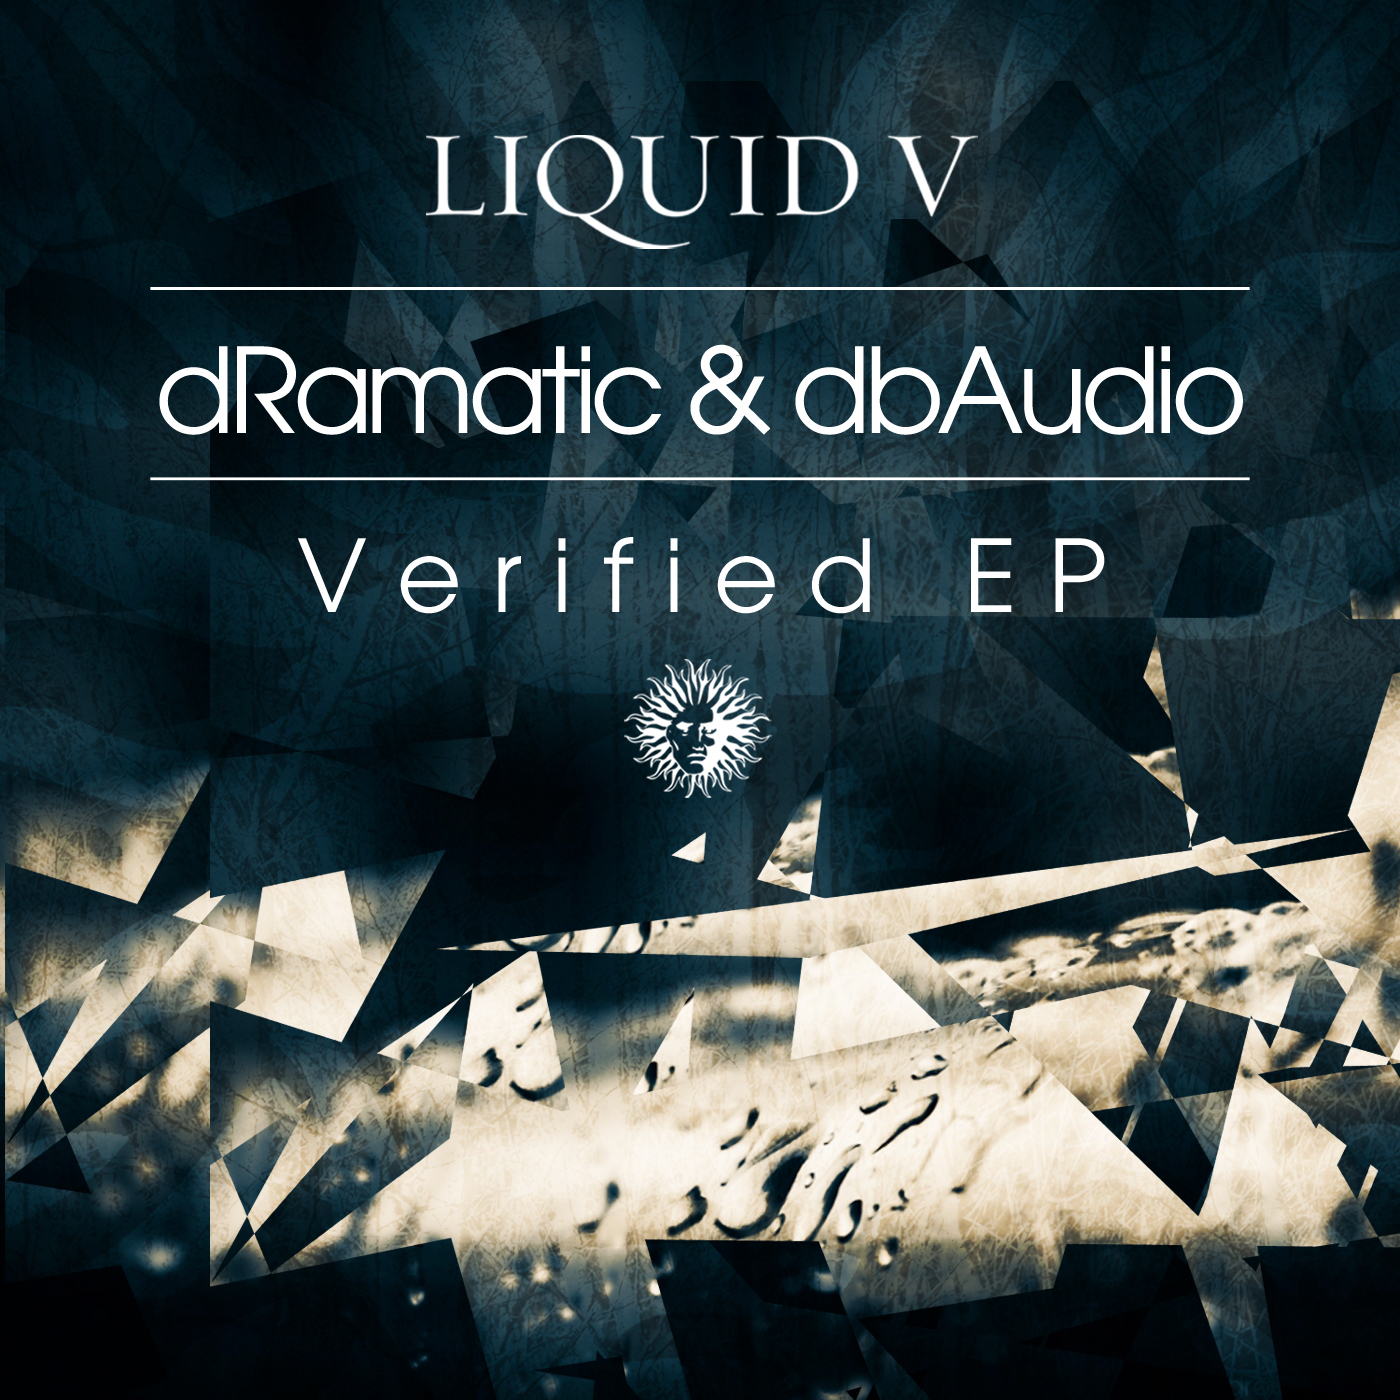 Dramatic & DBAudio/VERIFIED 12""